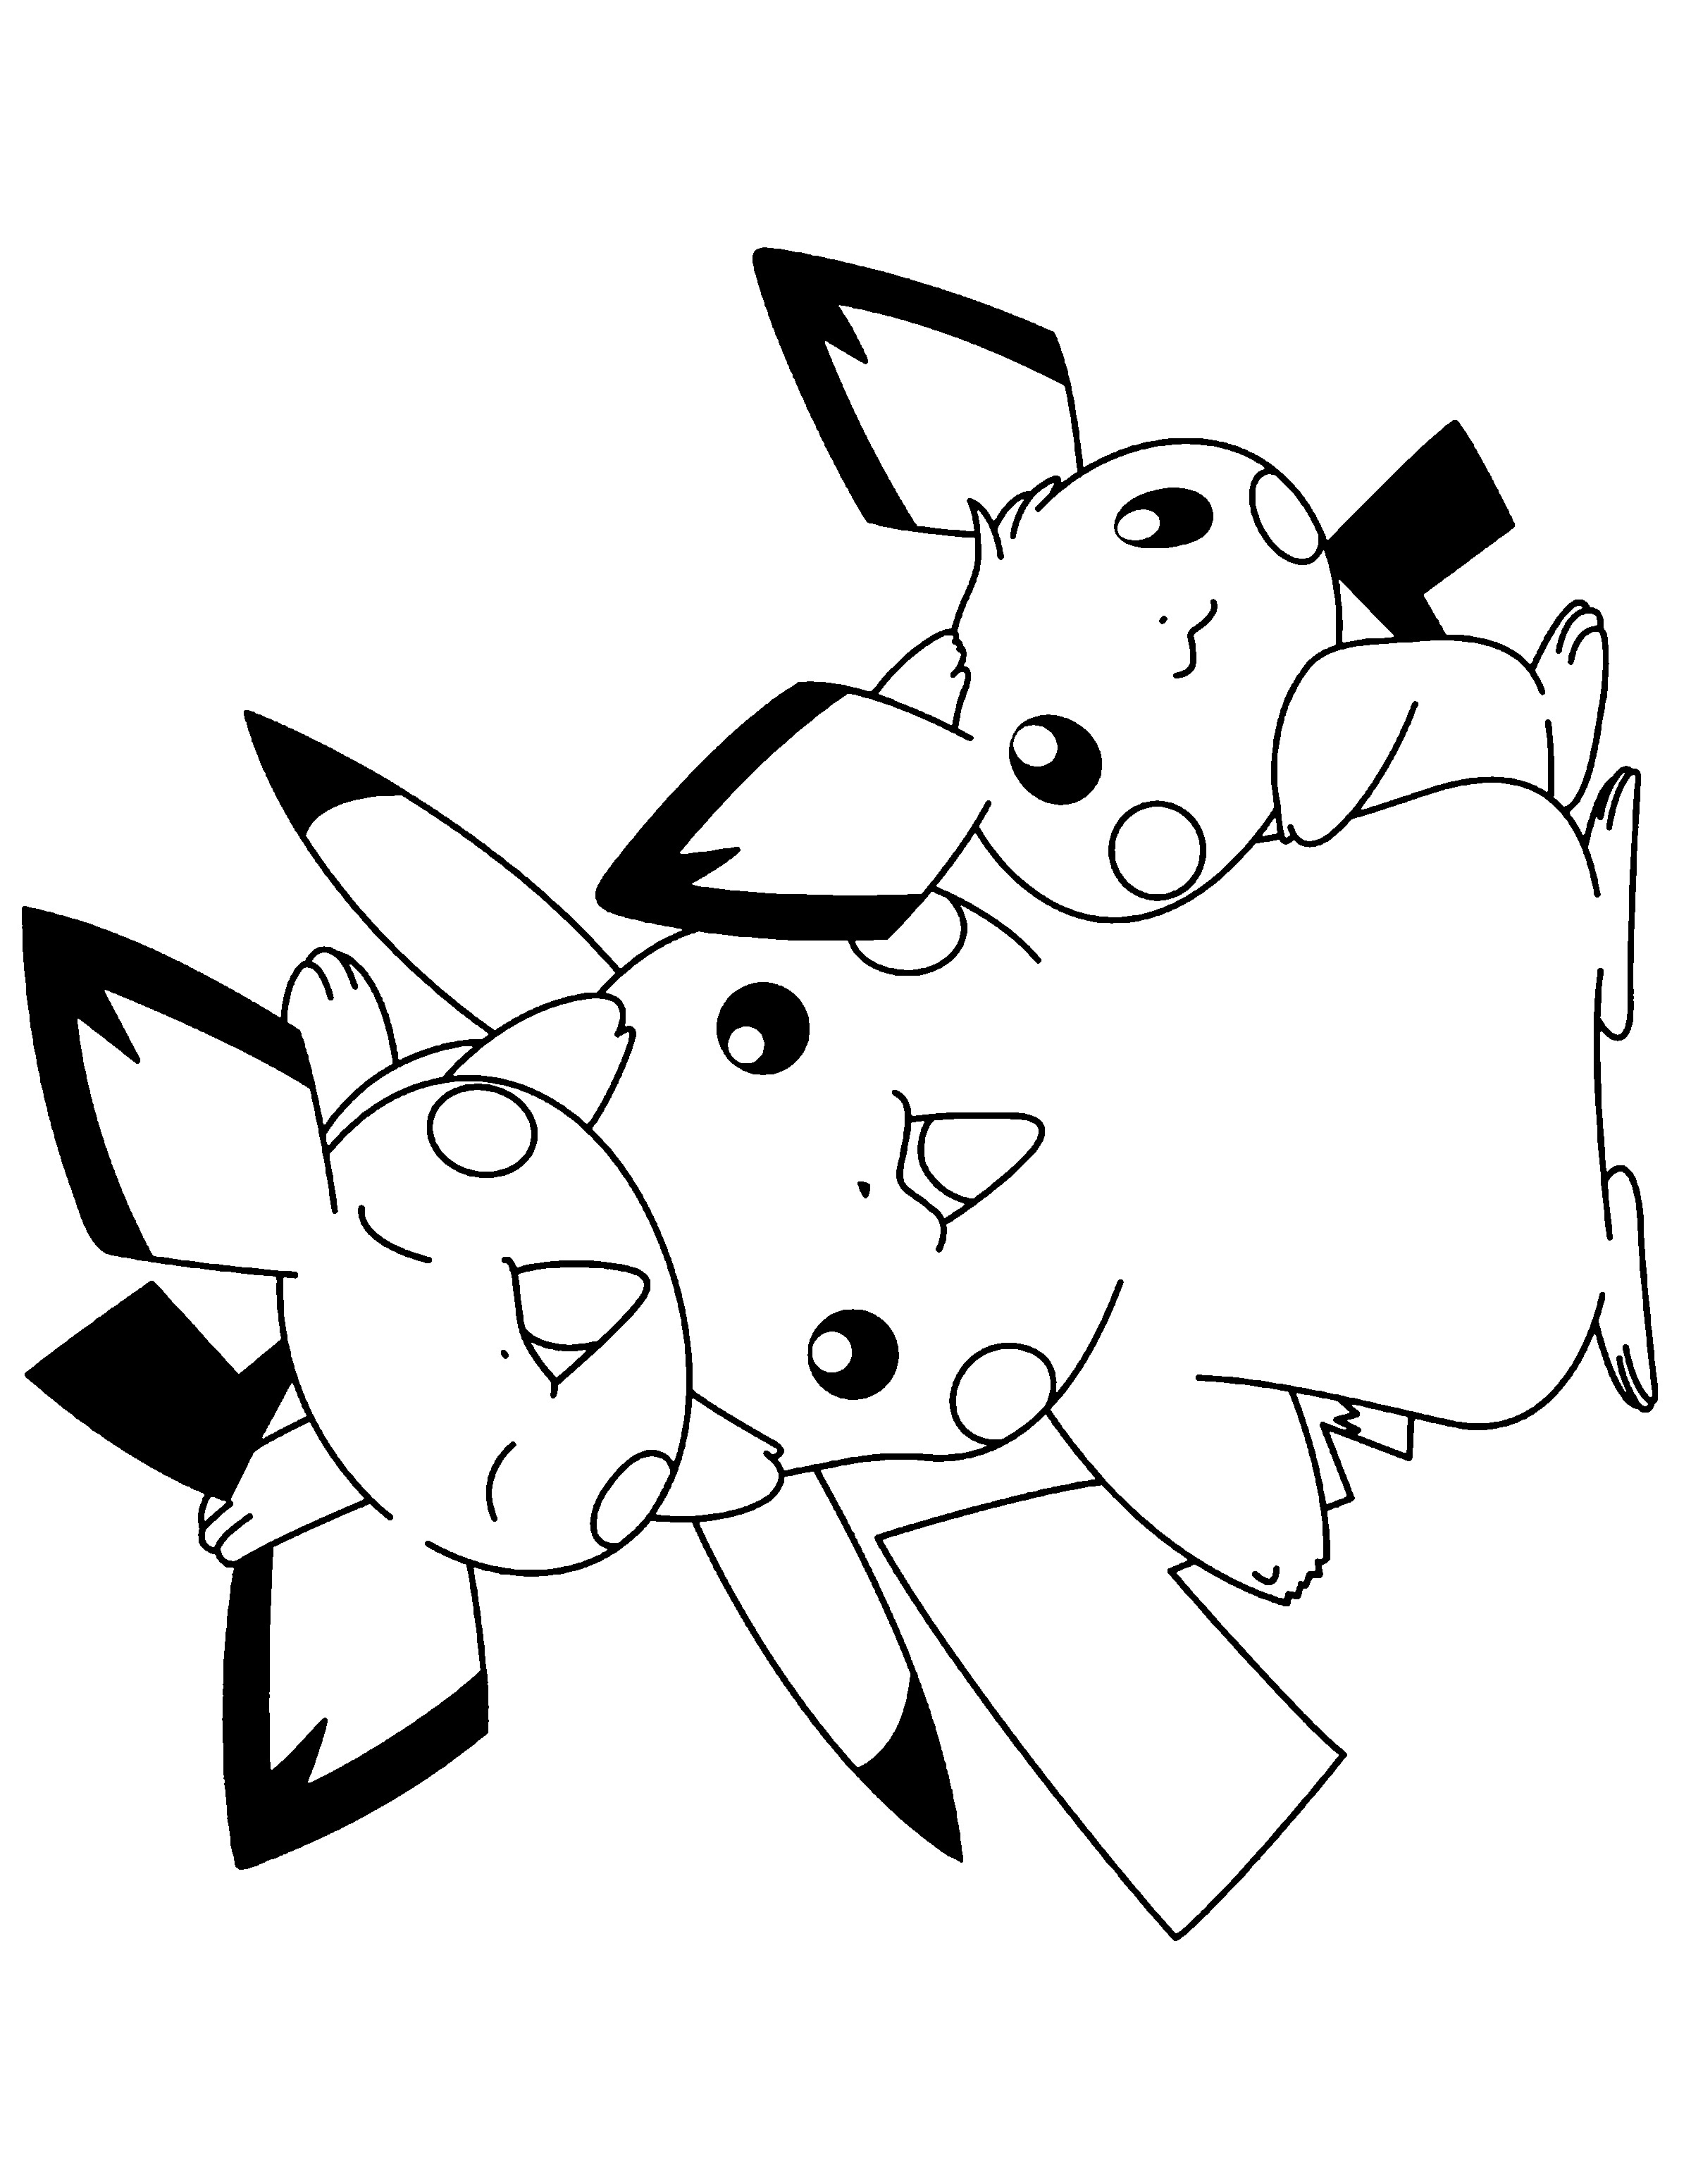 pichu coloring pages pichu coloring page free printable coloring pages pages pichu coloring